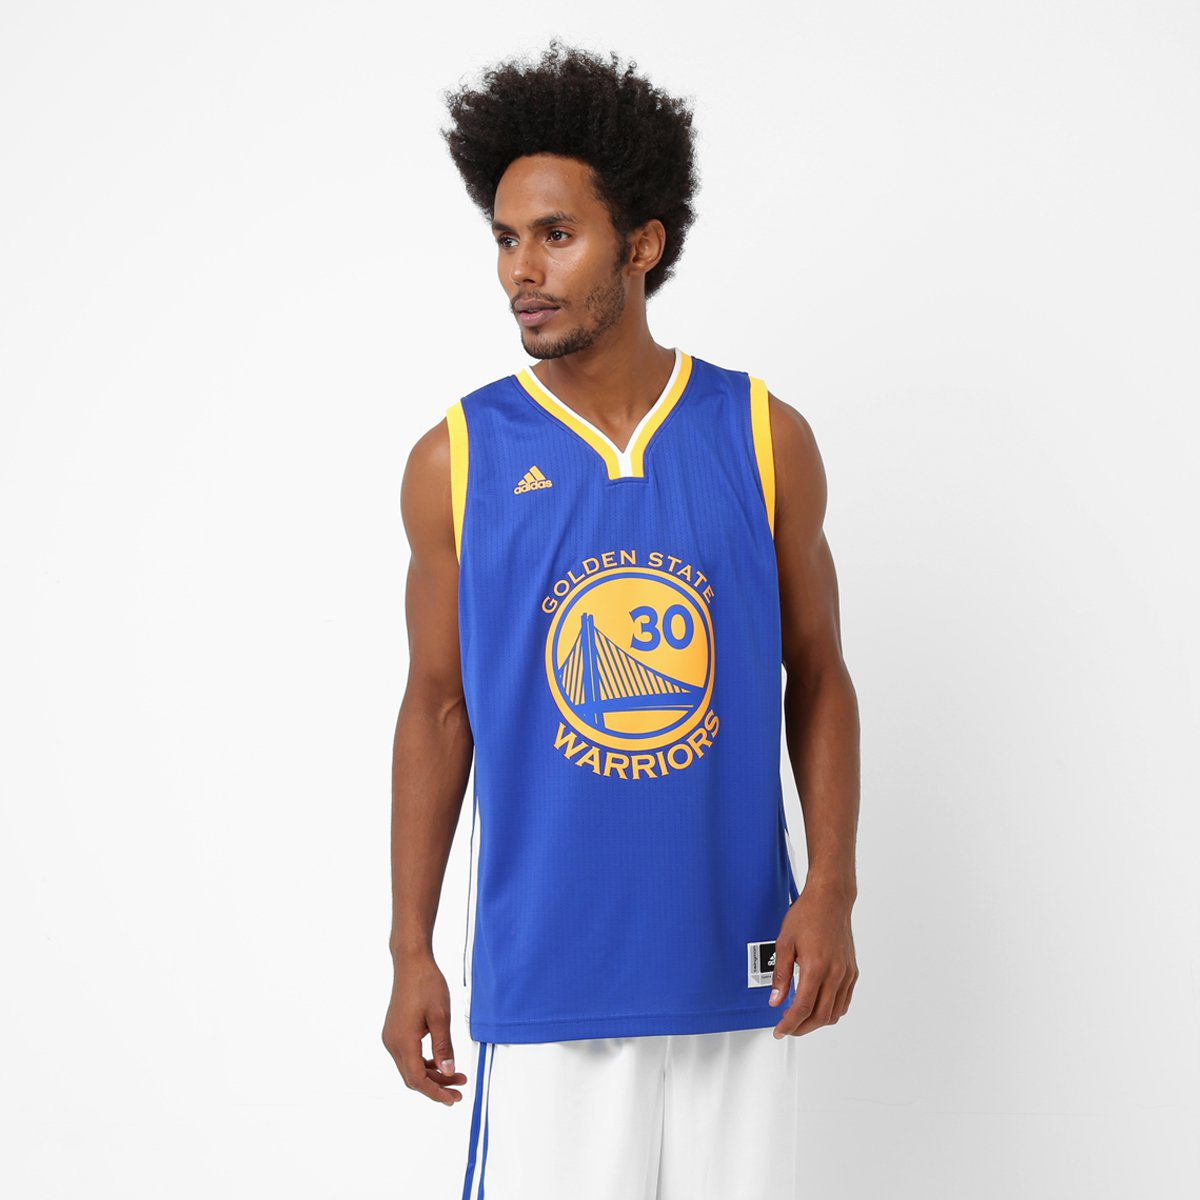 eac4a6395 Camiseta Regata NBA Adidas Golden State Warriors - Curry - Compre Agora